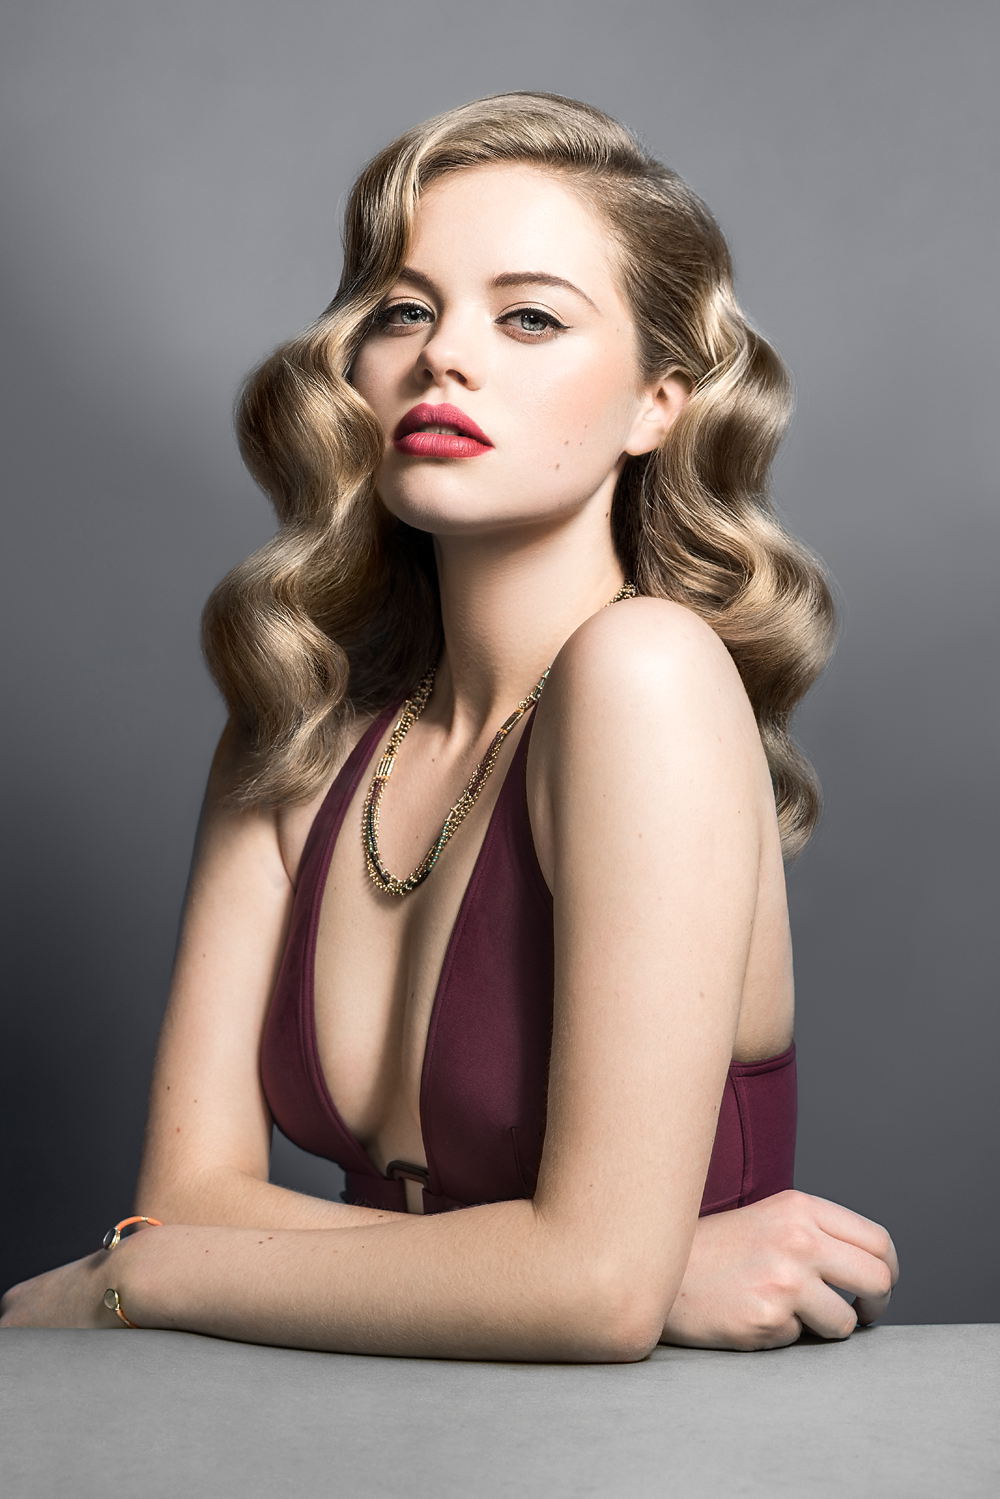 L'Oréal Professionnel Hollywood Waves